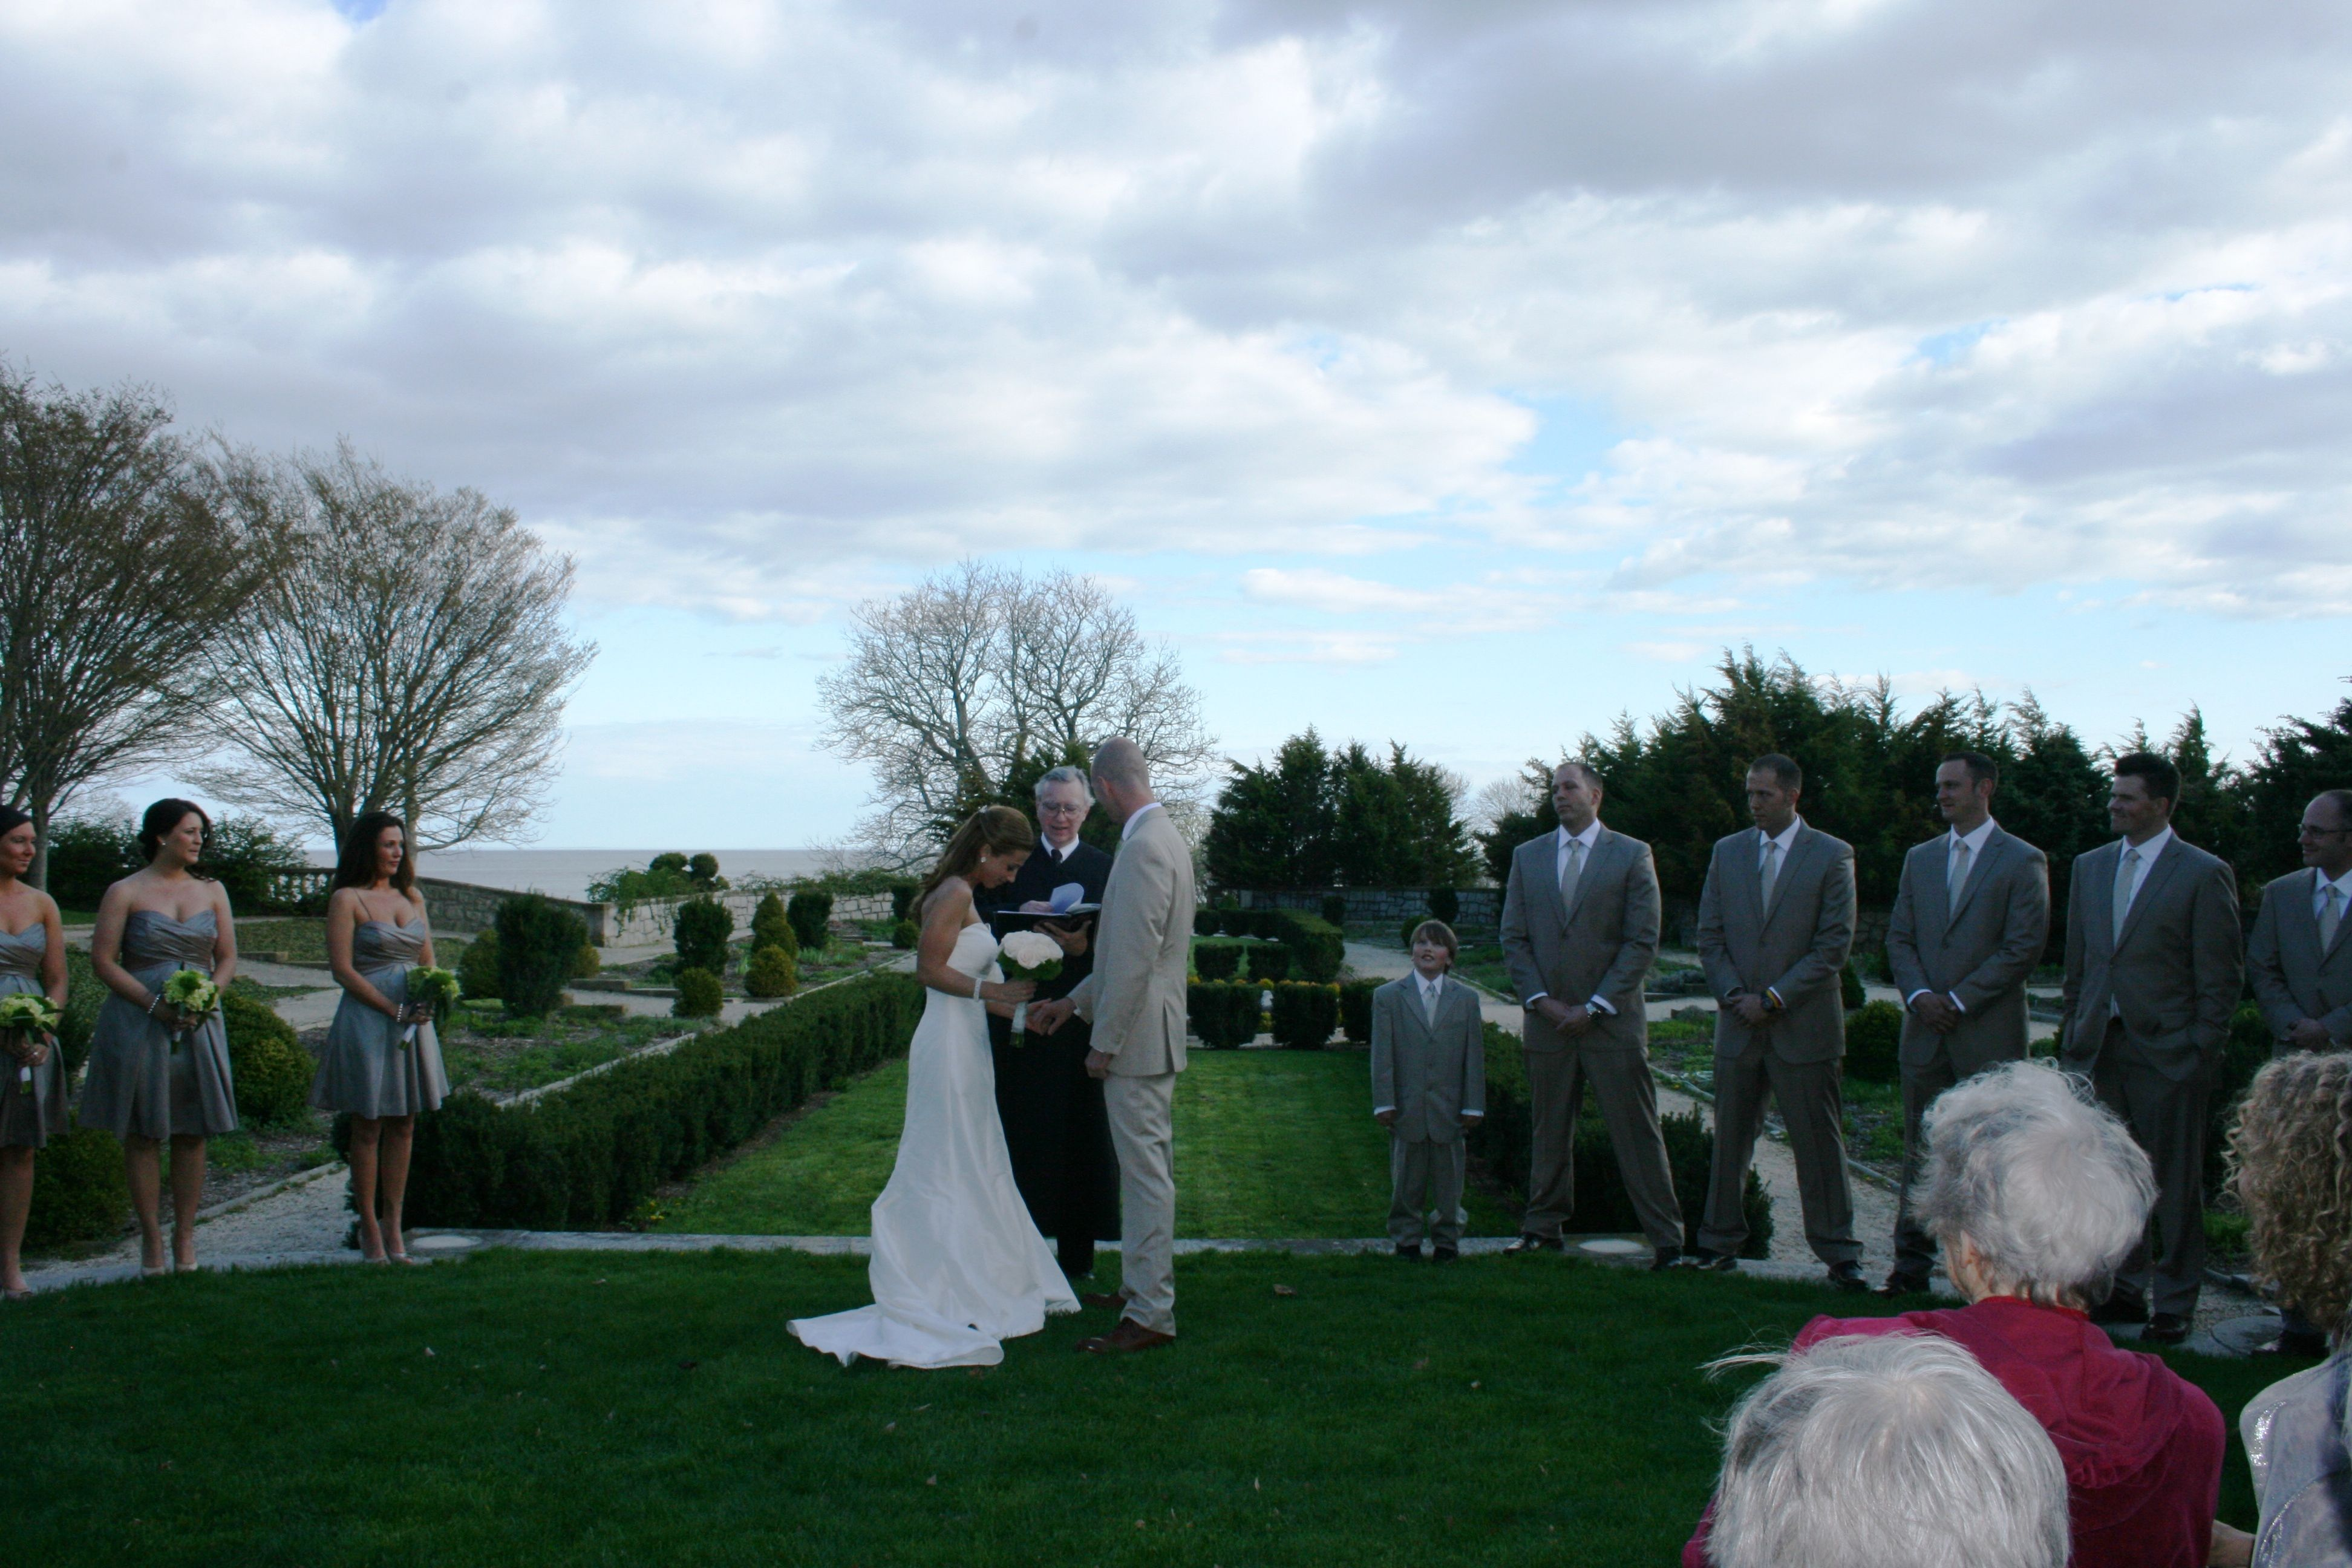 Even As Early As April Of Most Years The Harkness Pergola And Garden Are Great Settings For A Formal Wedding State Parks Memories Waterford